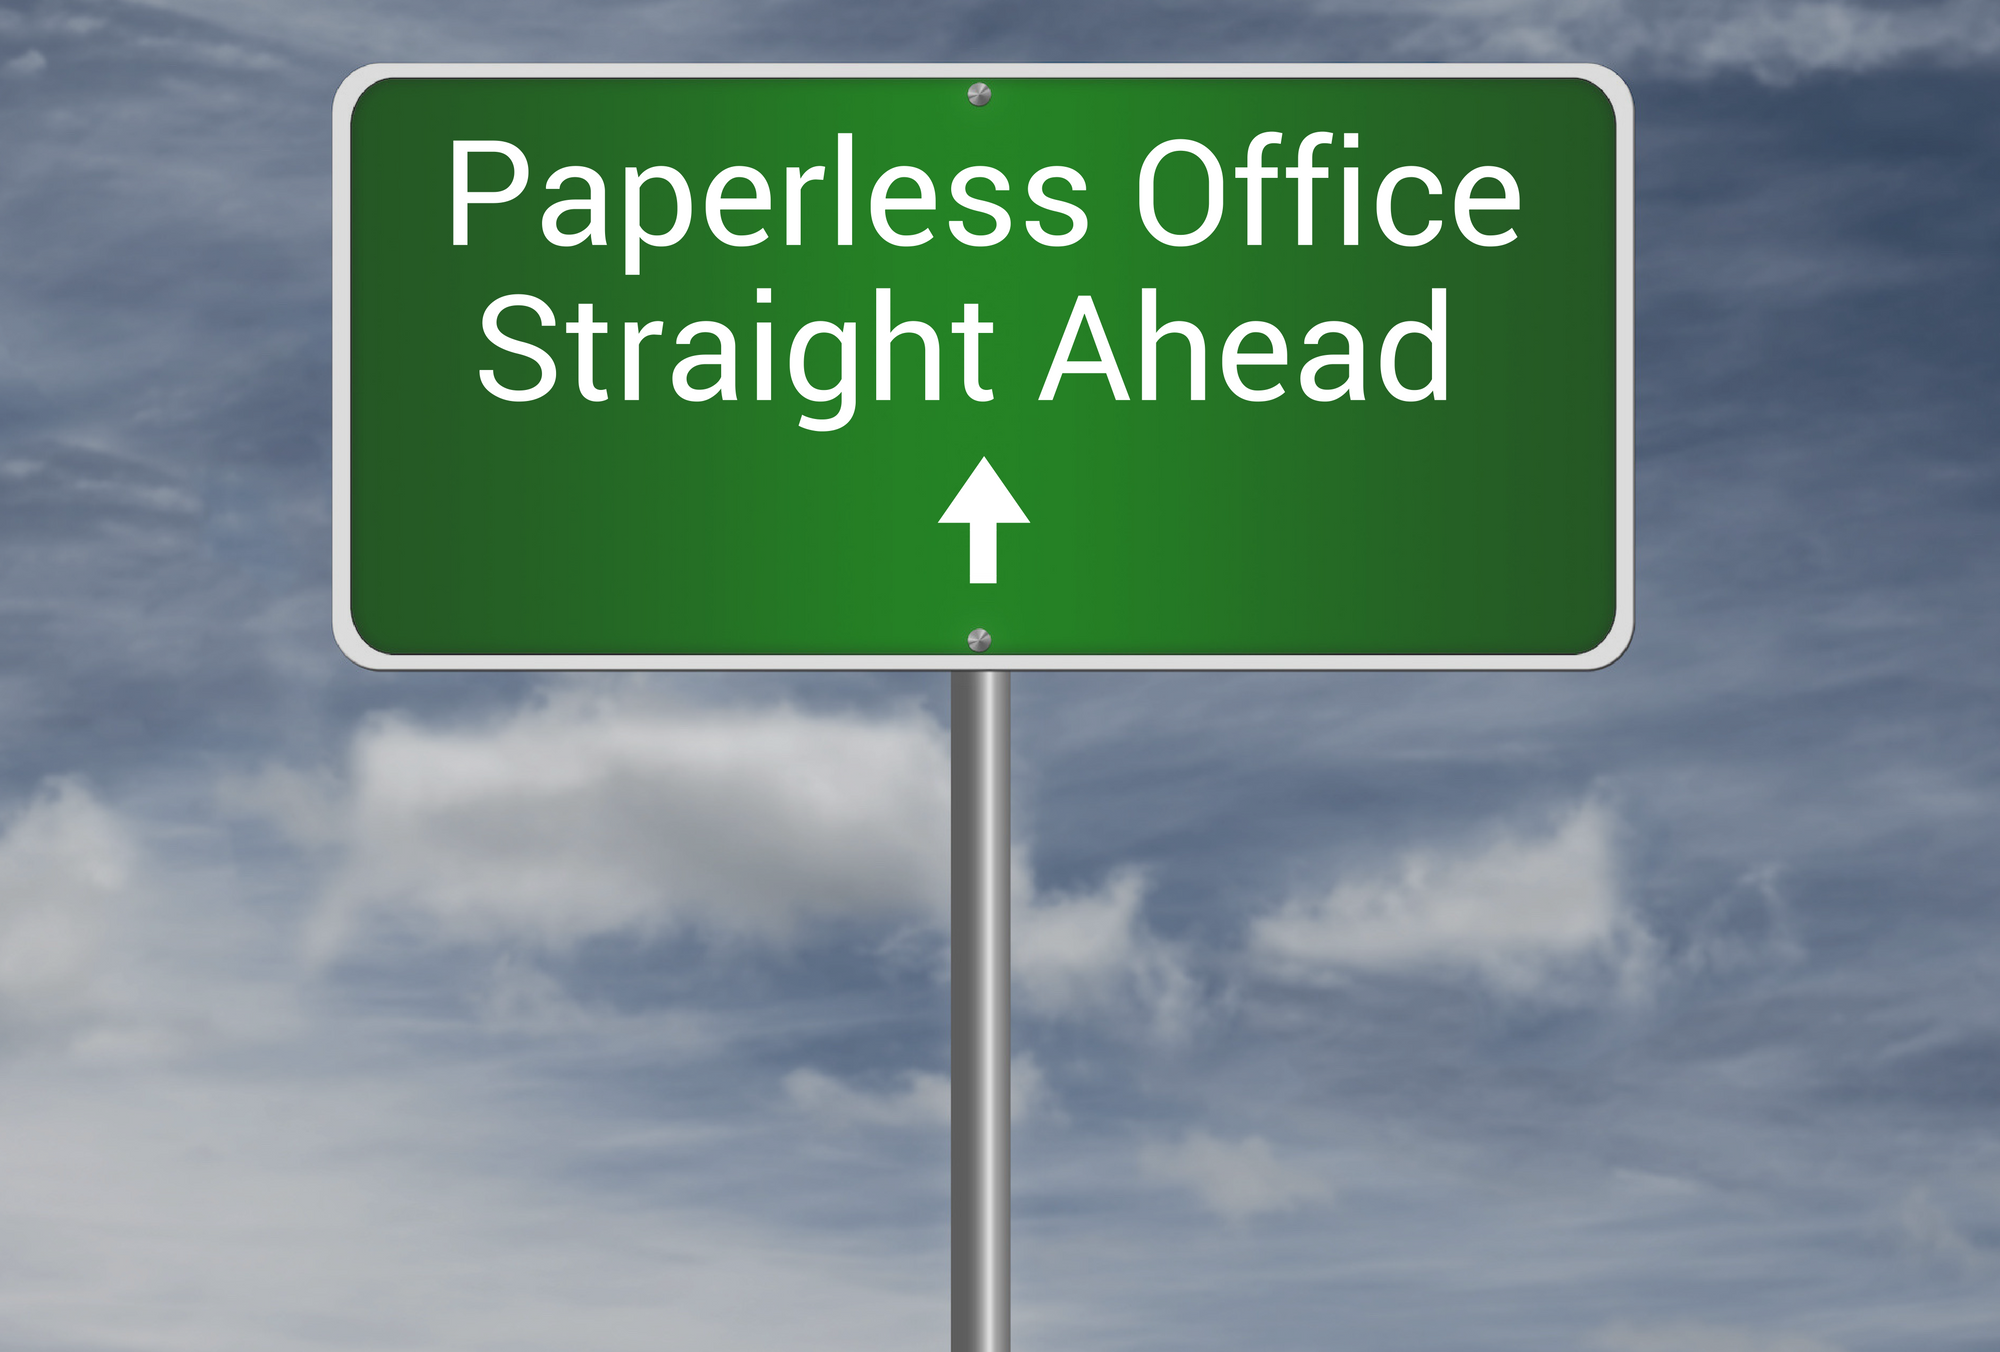 11 Reasons We're Sooo Over Paper (And Every Business Should Be Too)